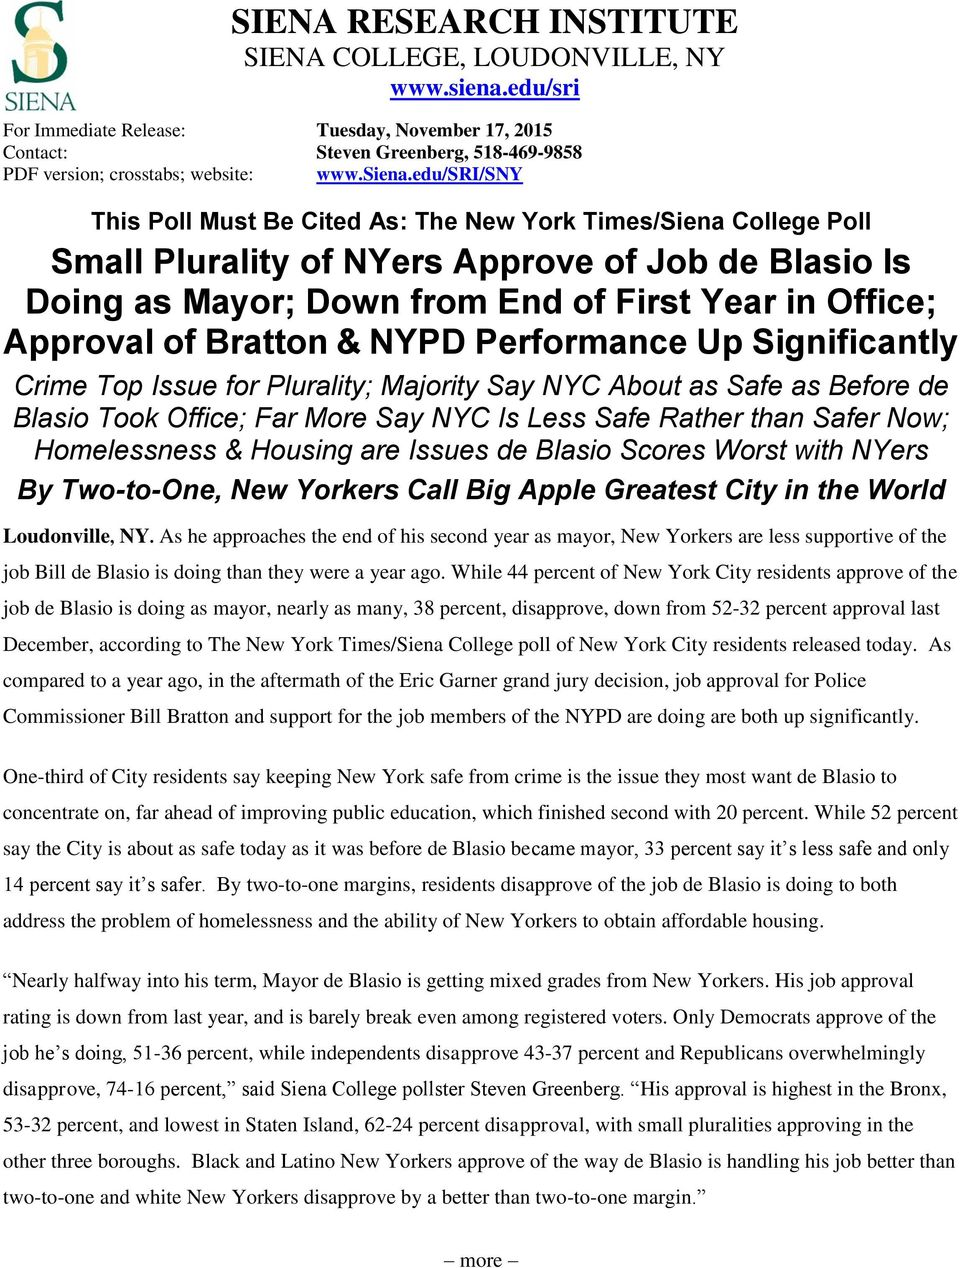 edu/sri/sny This Poll Must Be Cited As: The New York Times/Siena College Poll Small Plurality of NYers Approve of Job de Blasio Is Doing as Mayor; Down from End of First Year in Office; Approval of